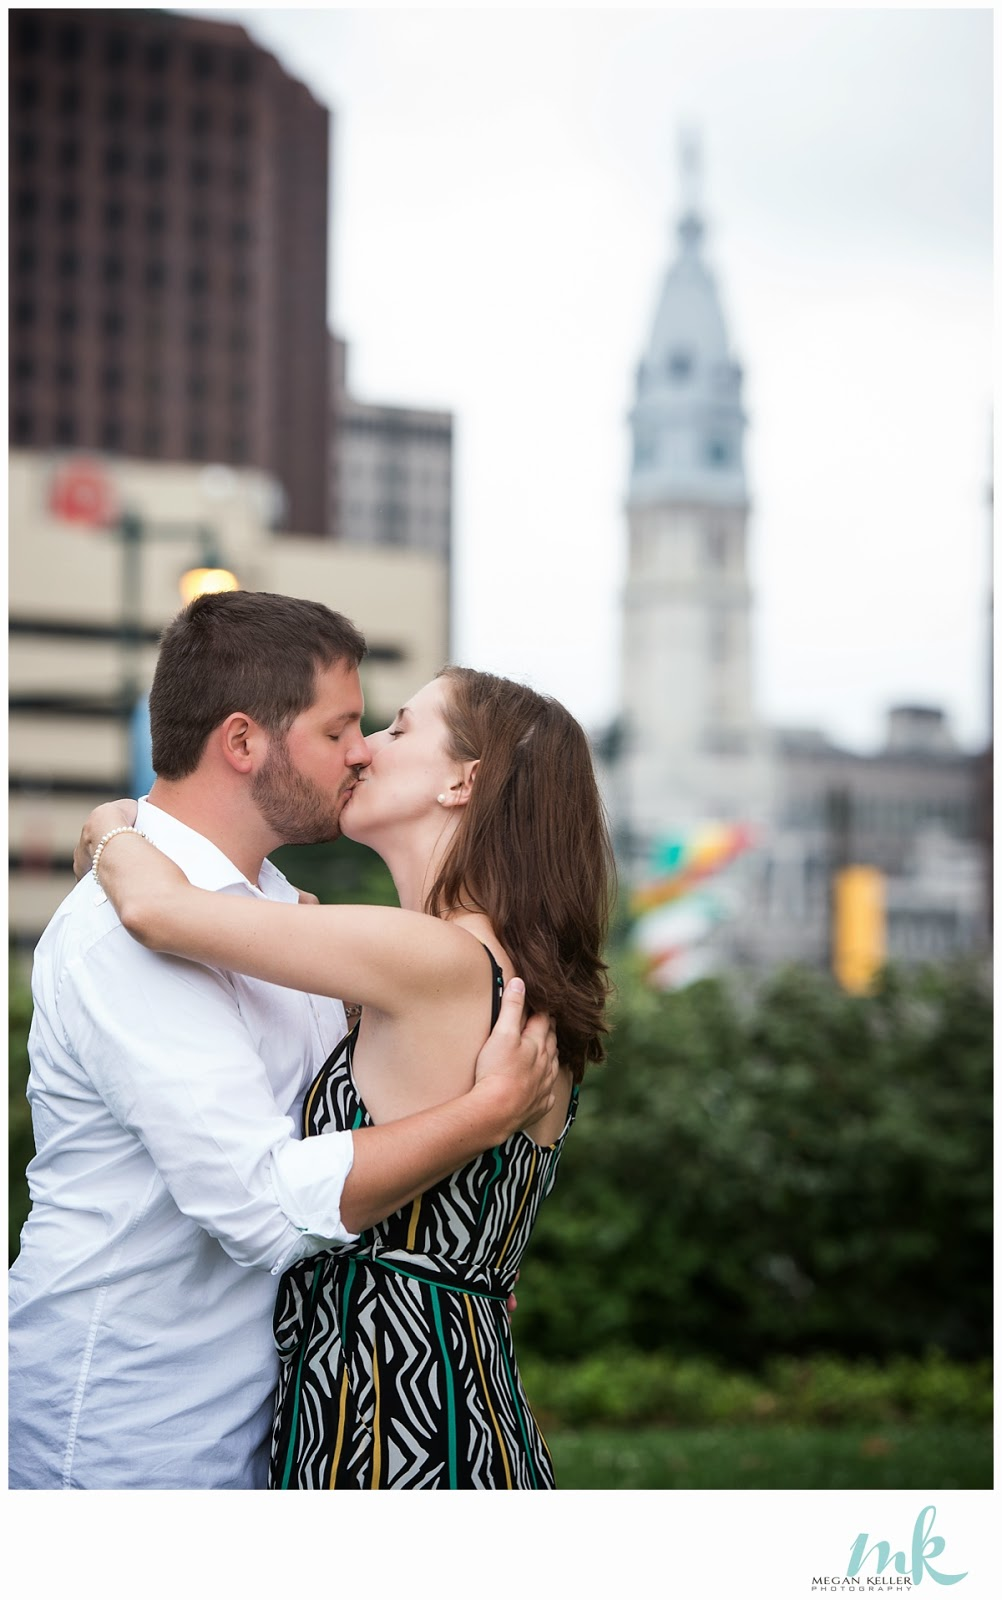 Kelly and Frank Engagement Session Kelly and Frank Engagement Session 2014 08 04 0003